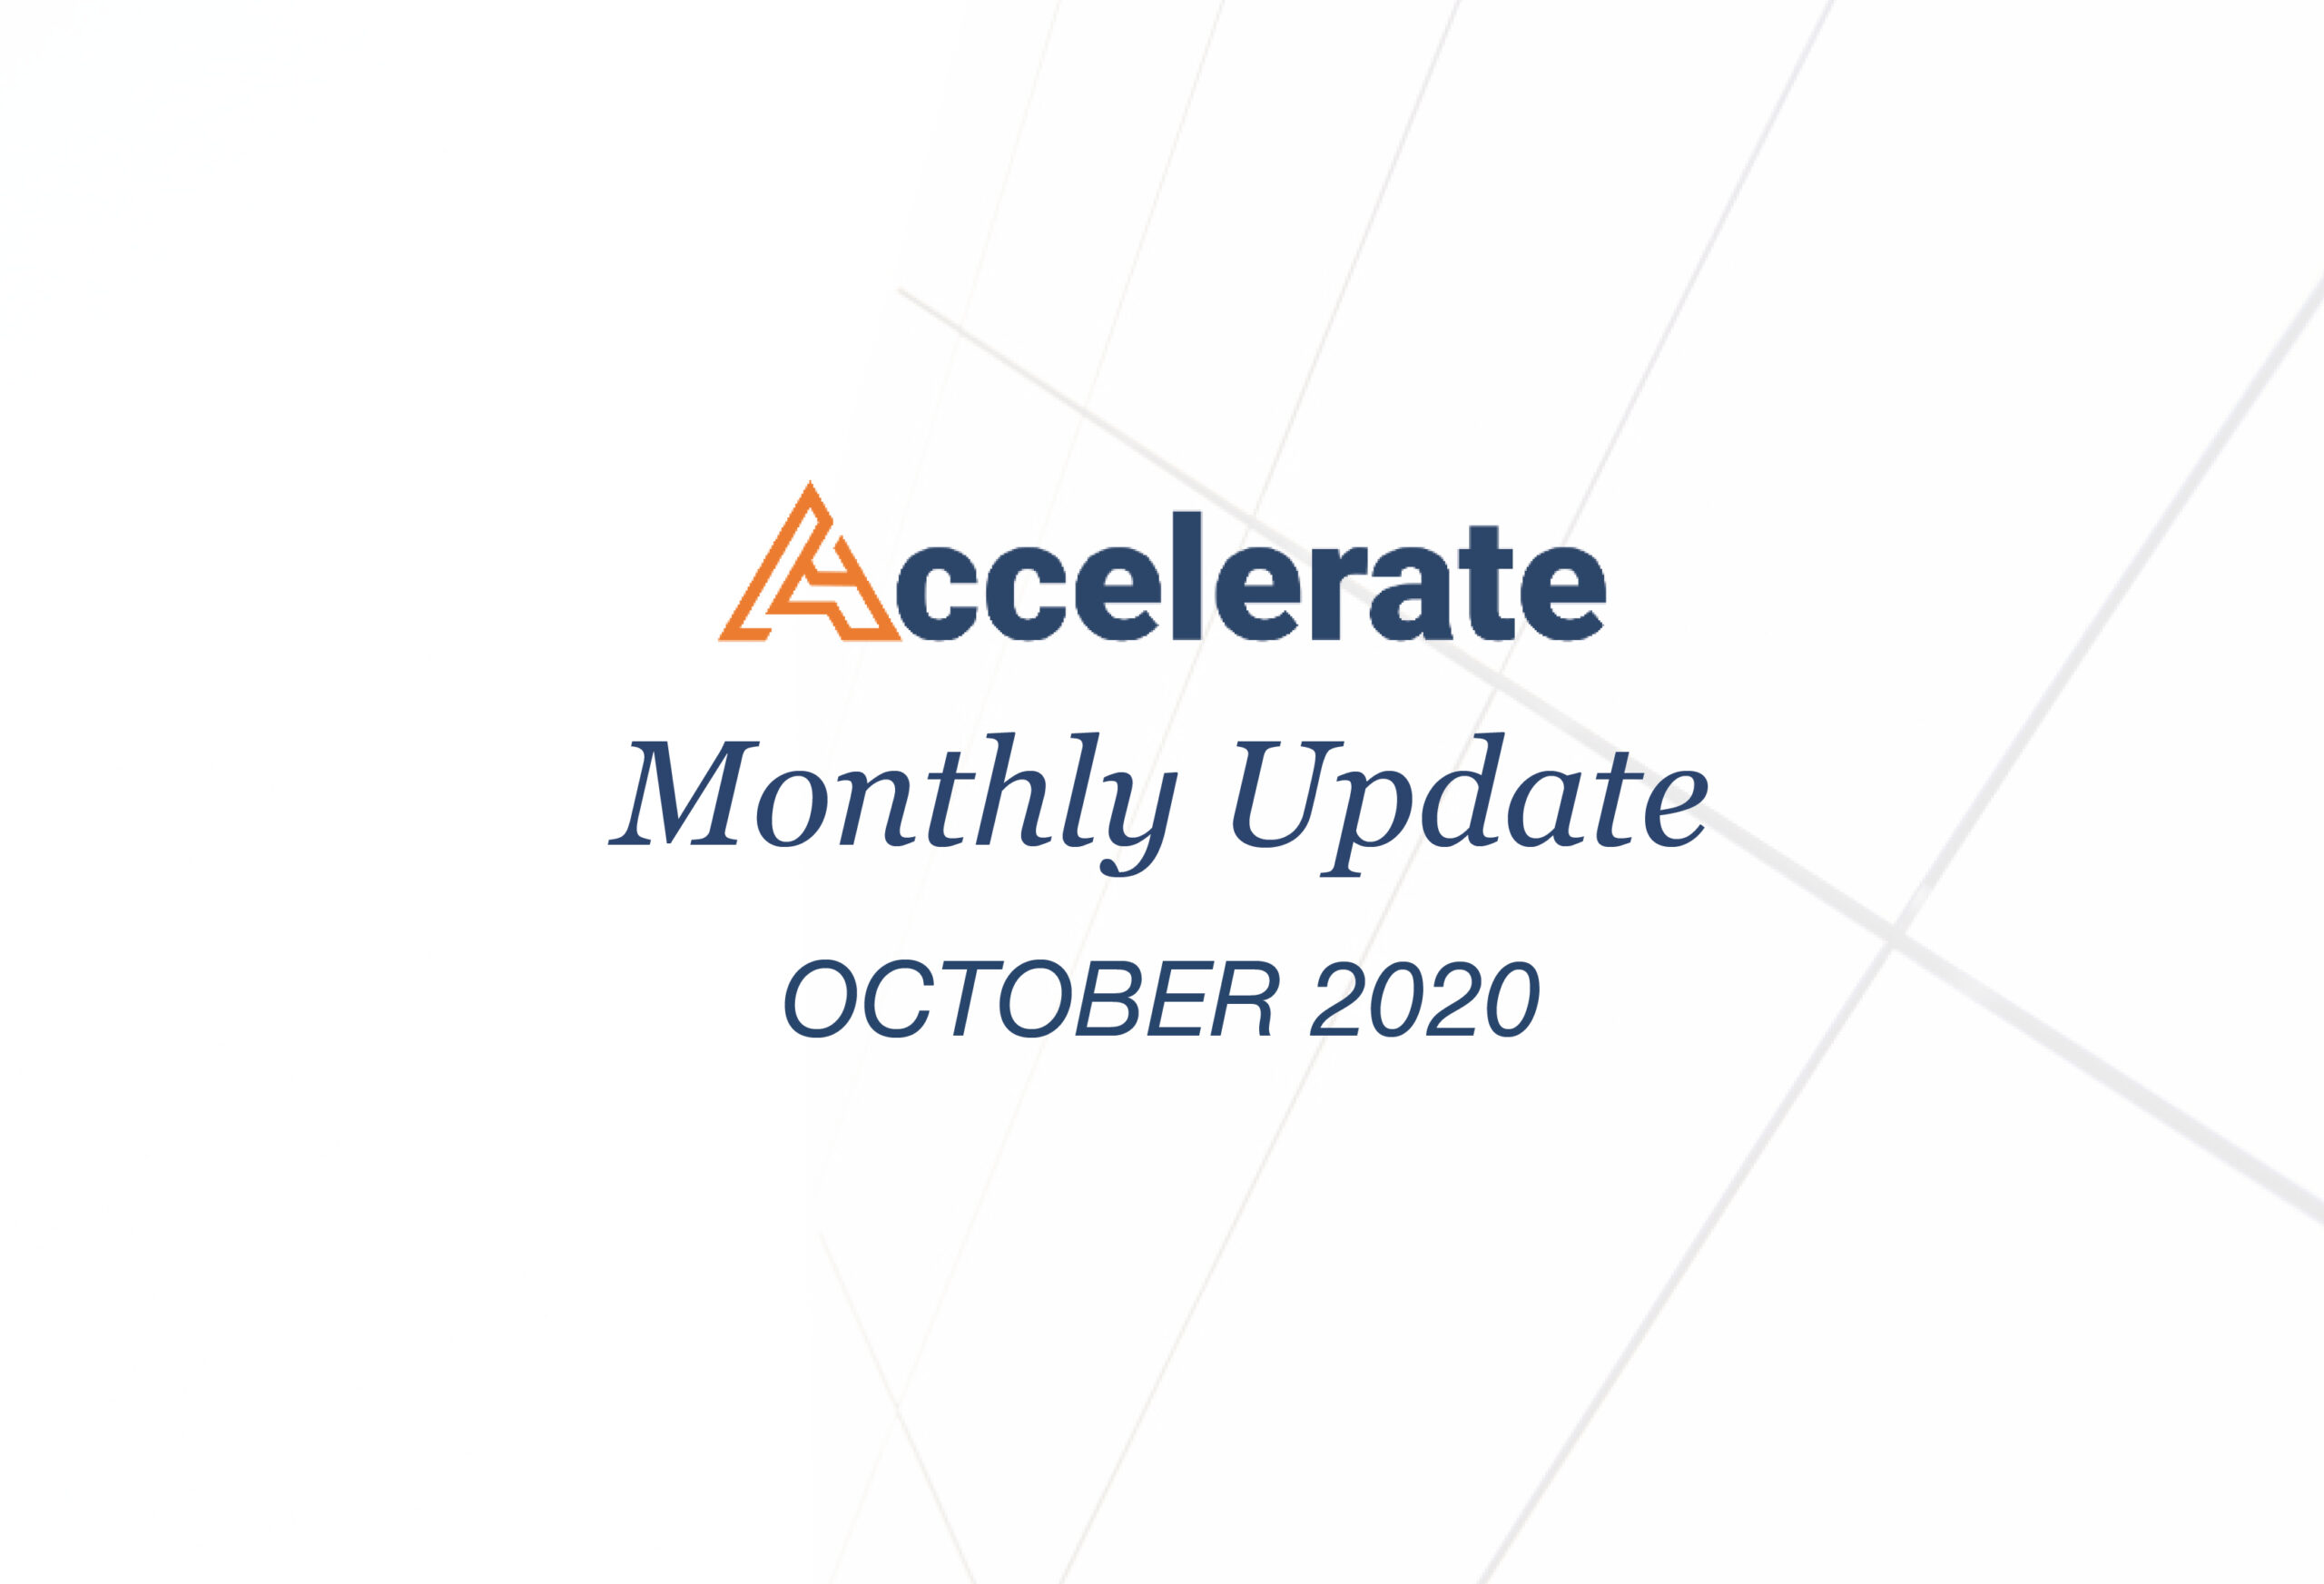 Accelerate Monthly Update- October 2020